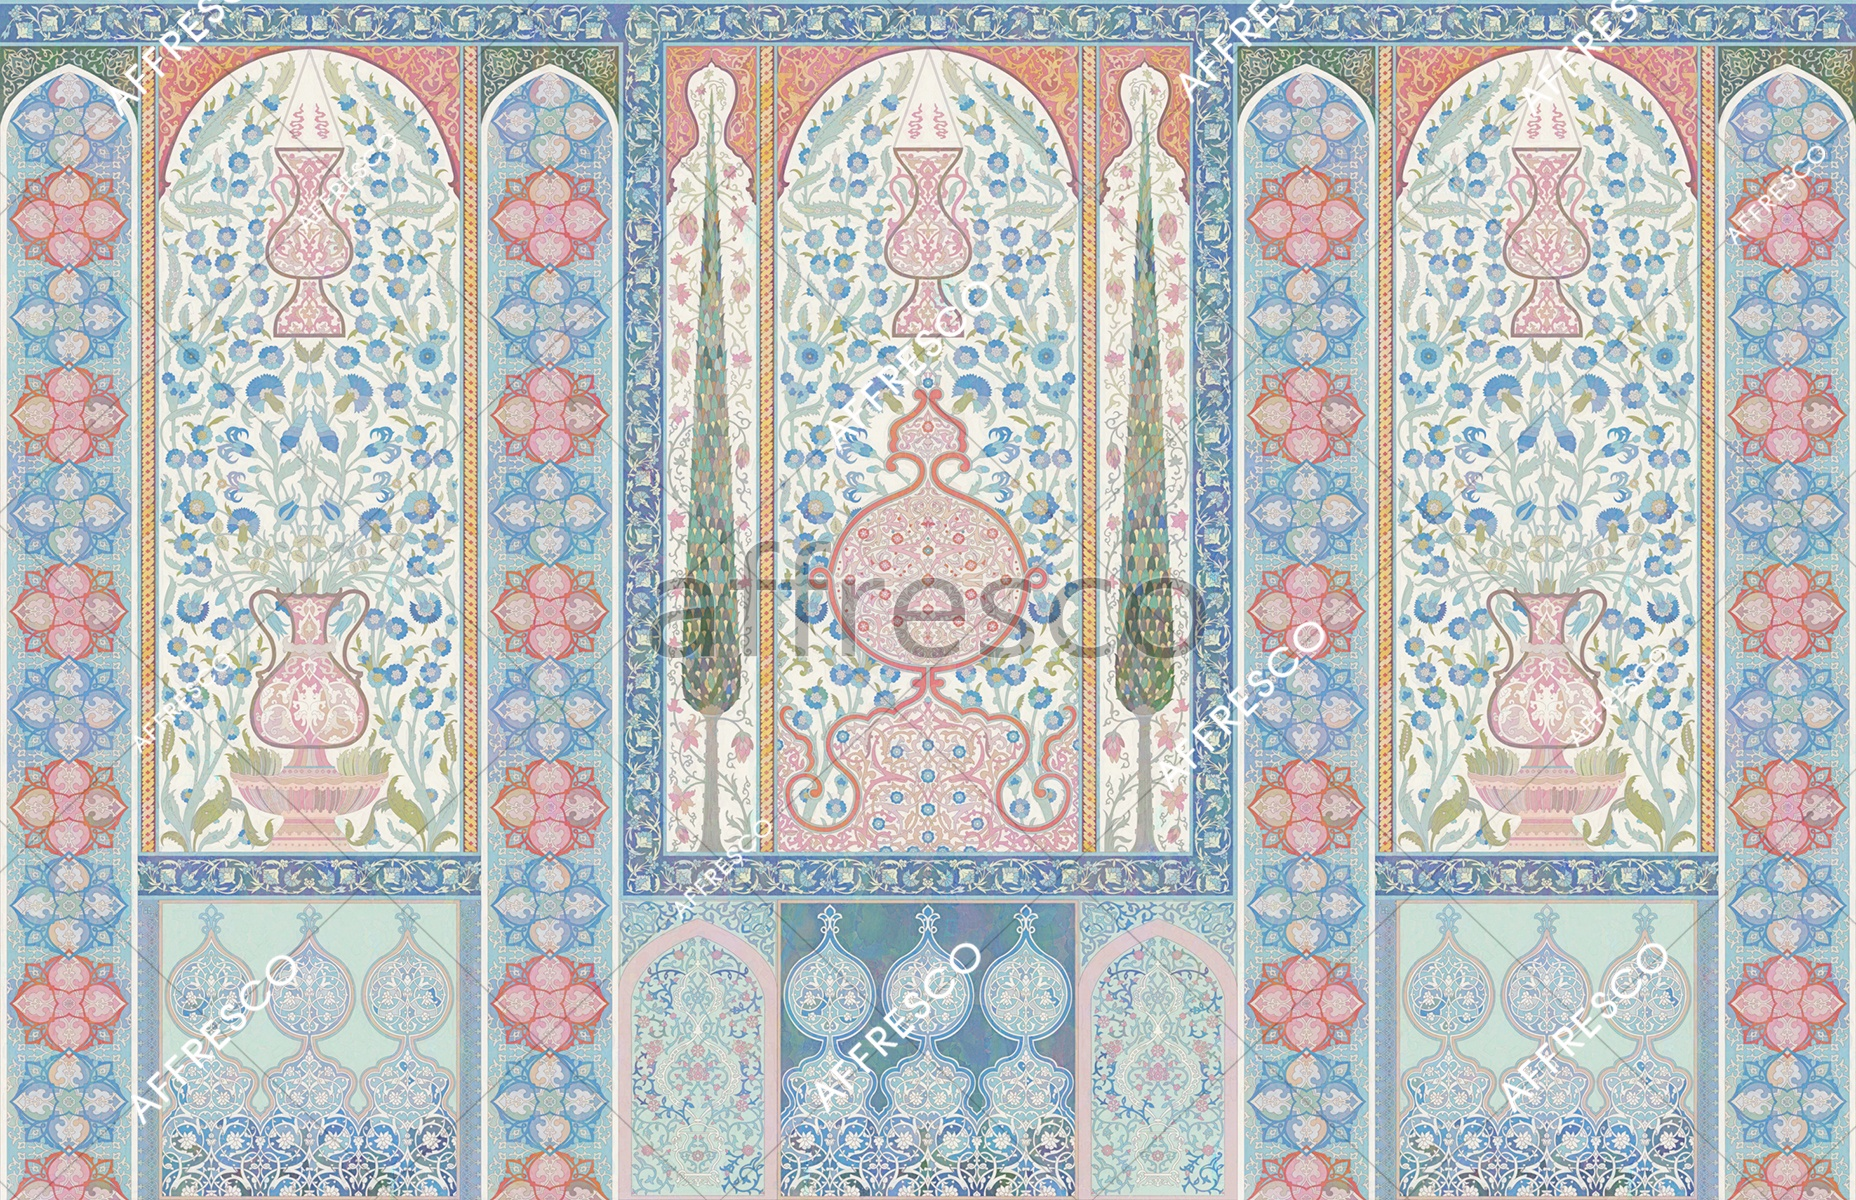 Handmade wallpaper, Orient ornament